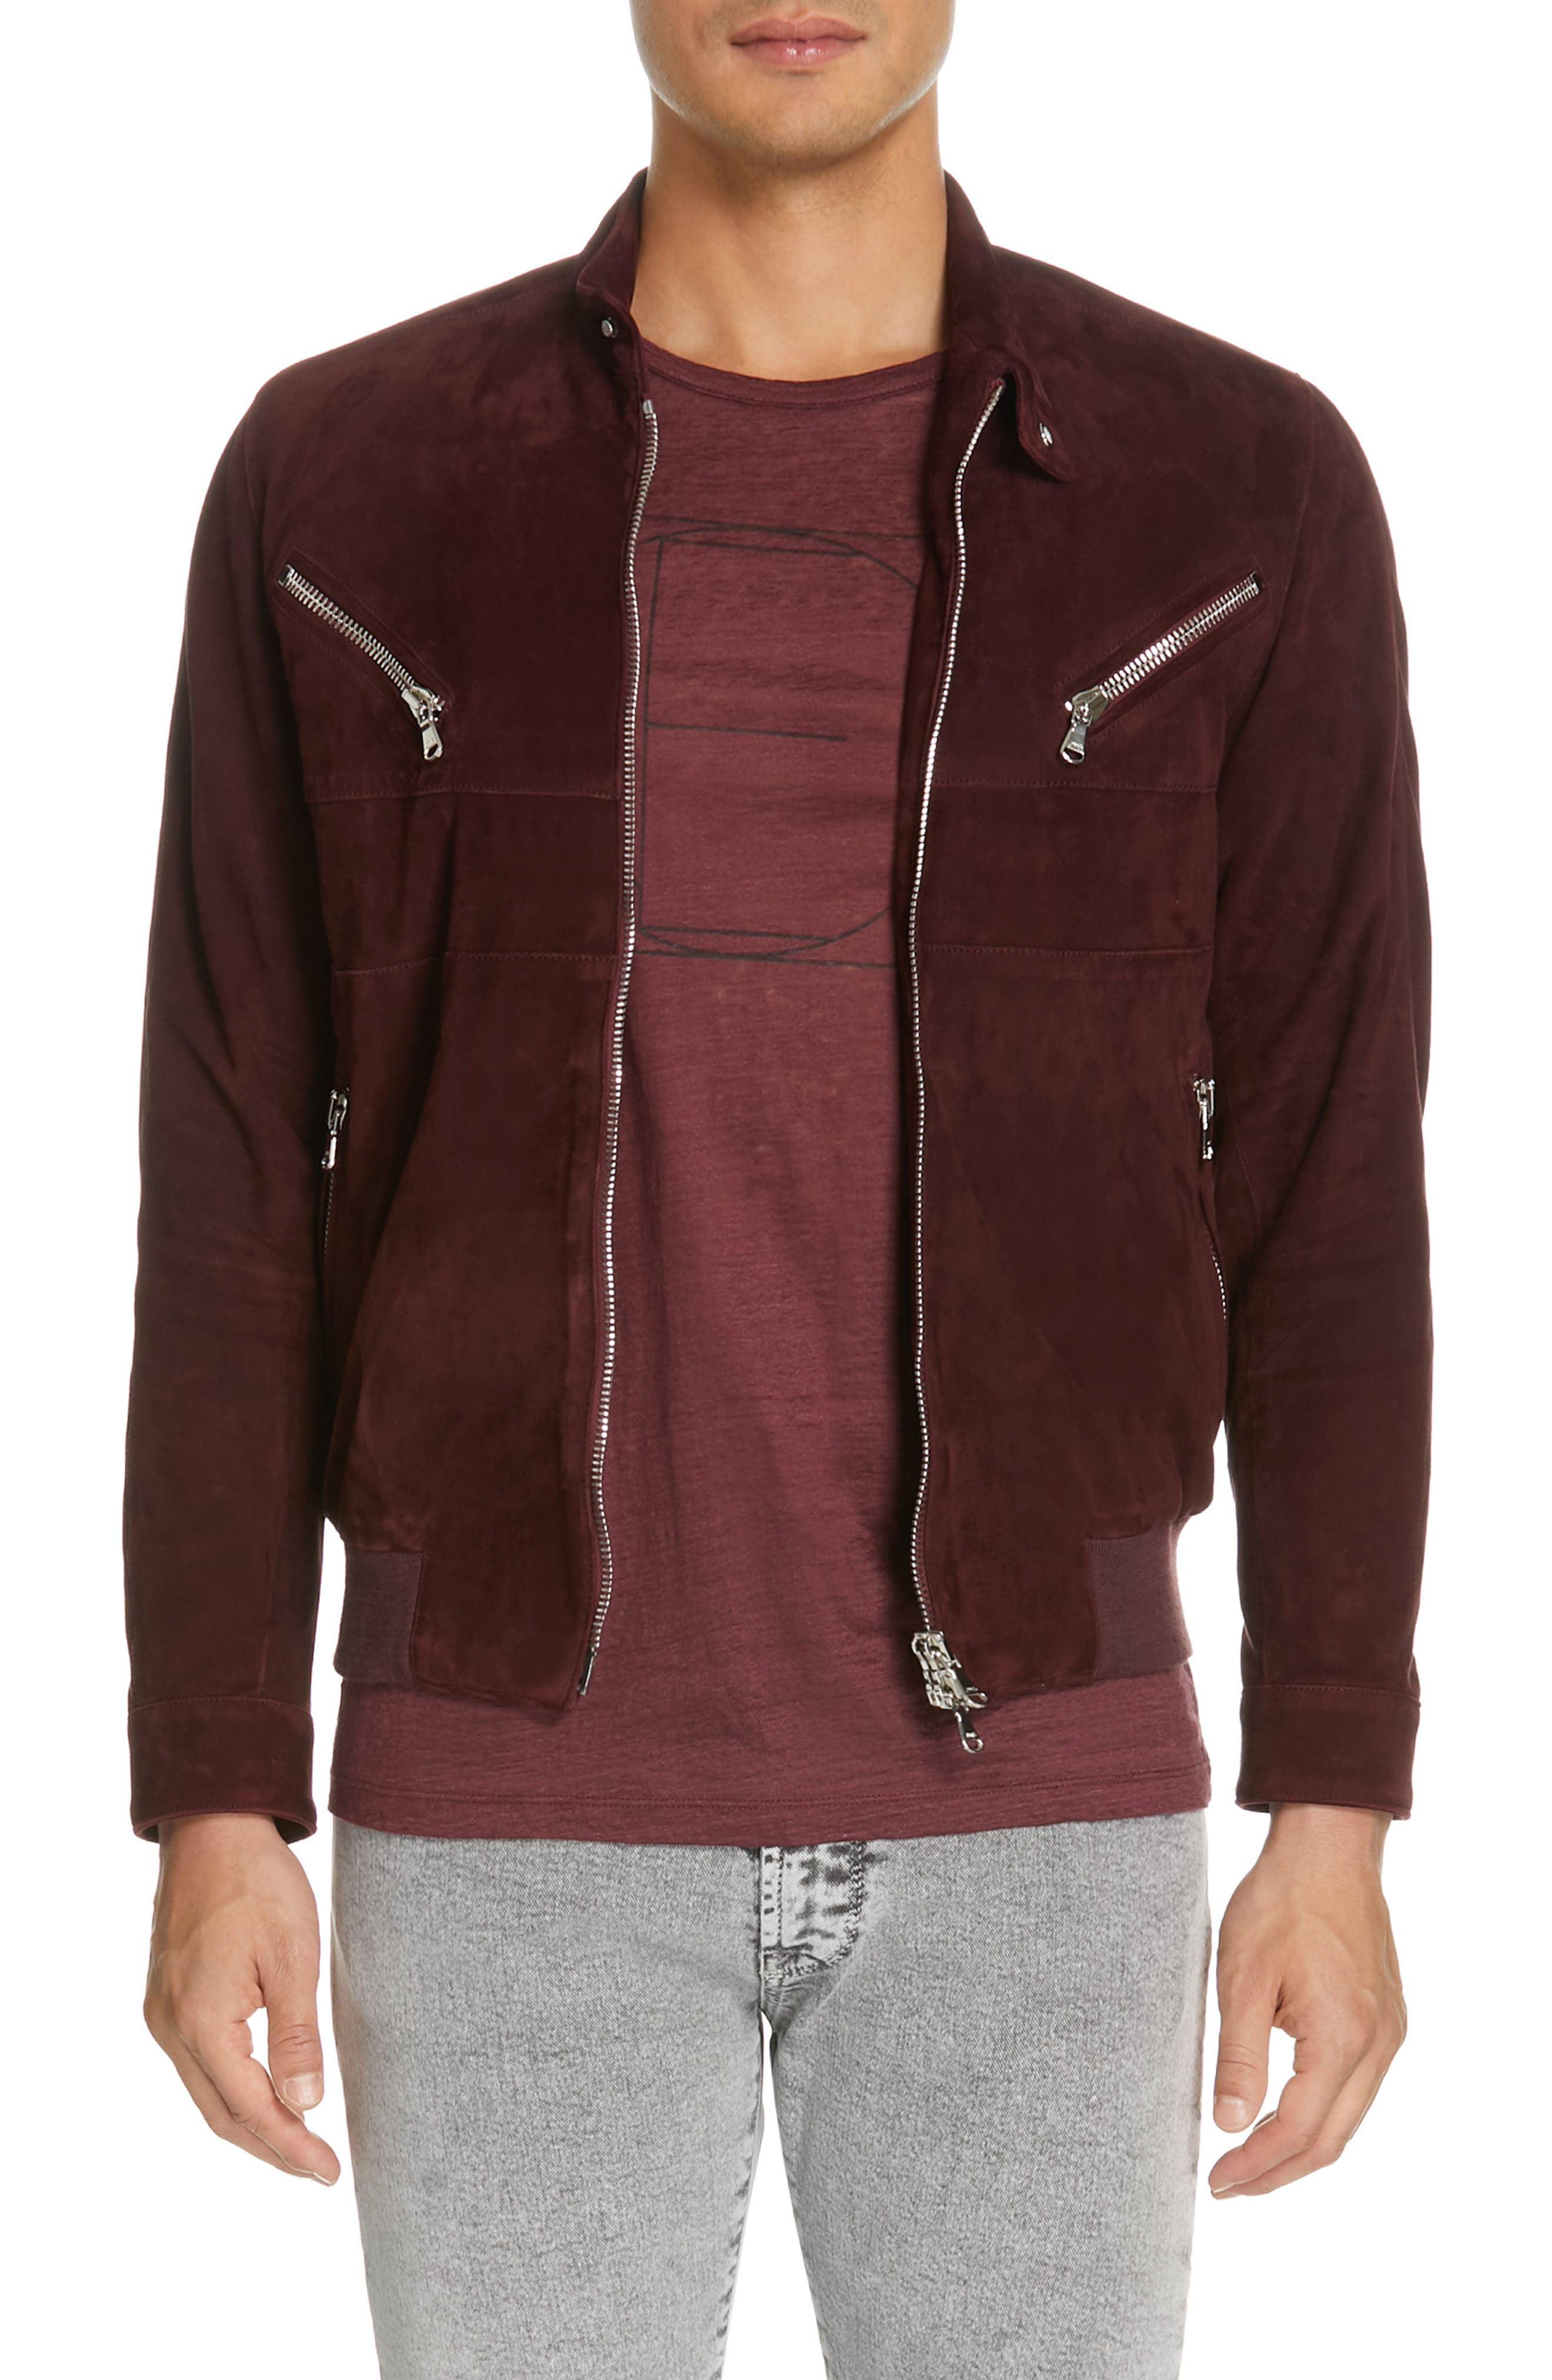 EIDOS, Suede Bomber Jacket, Main thumbnail 1, color, BURGUNDY